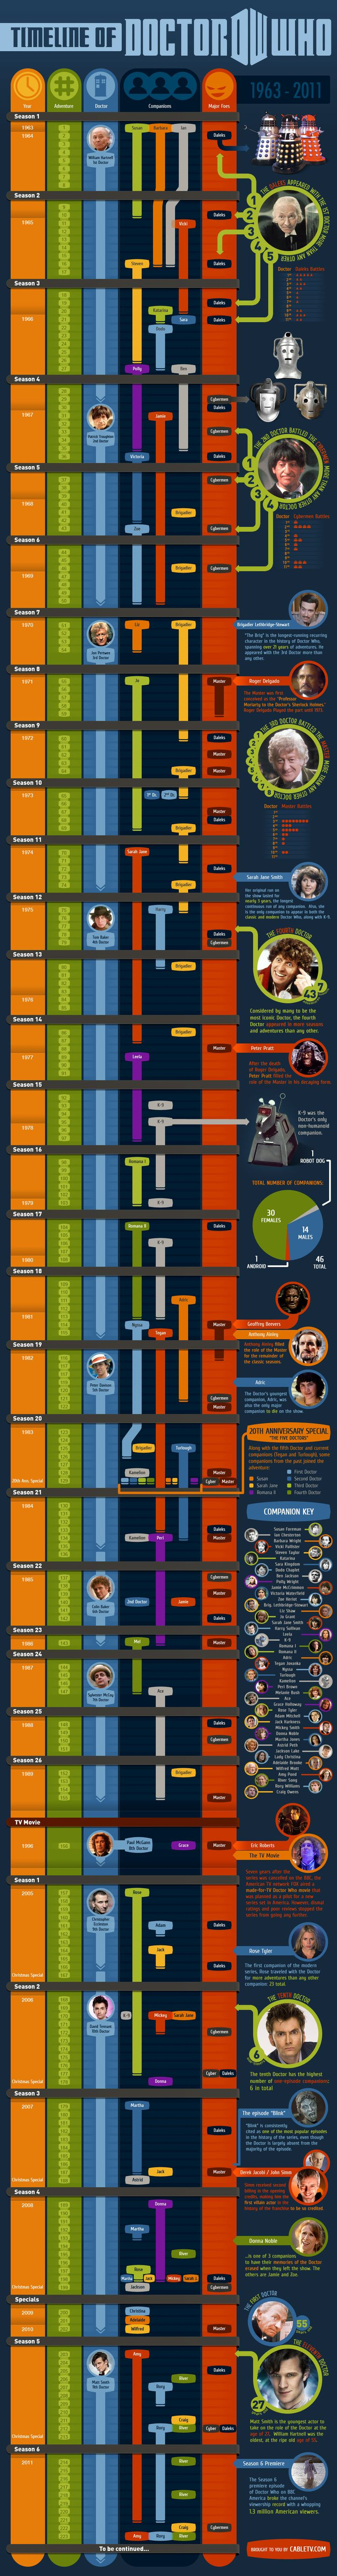 Follow The Doctor's Adventures With This Nifty Timeline | GeekDad | Wired.com